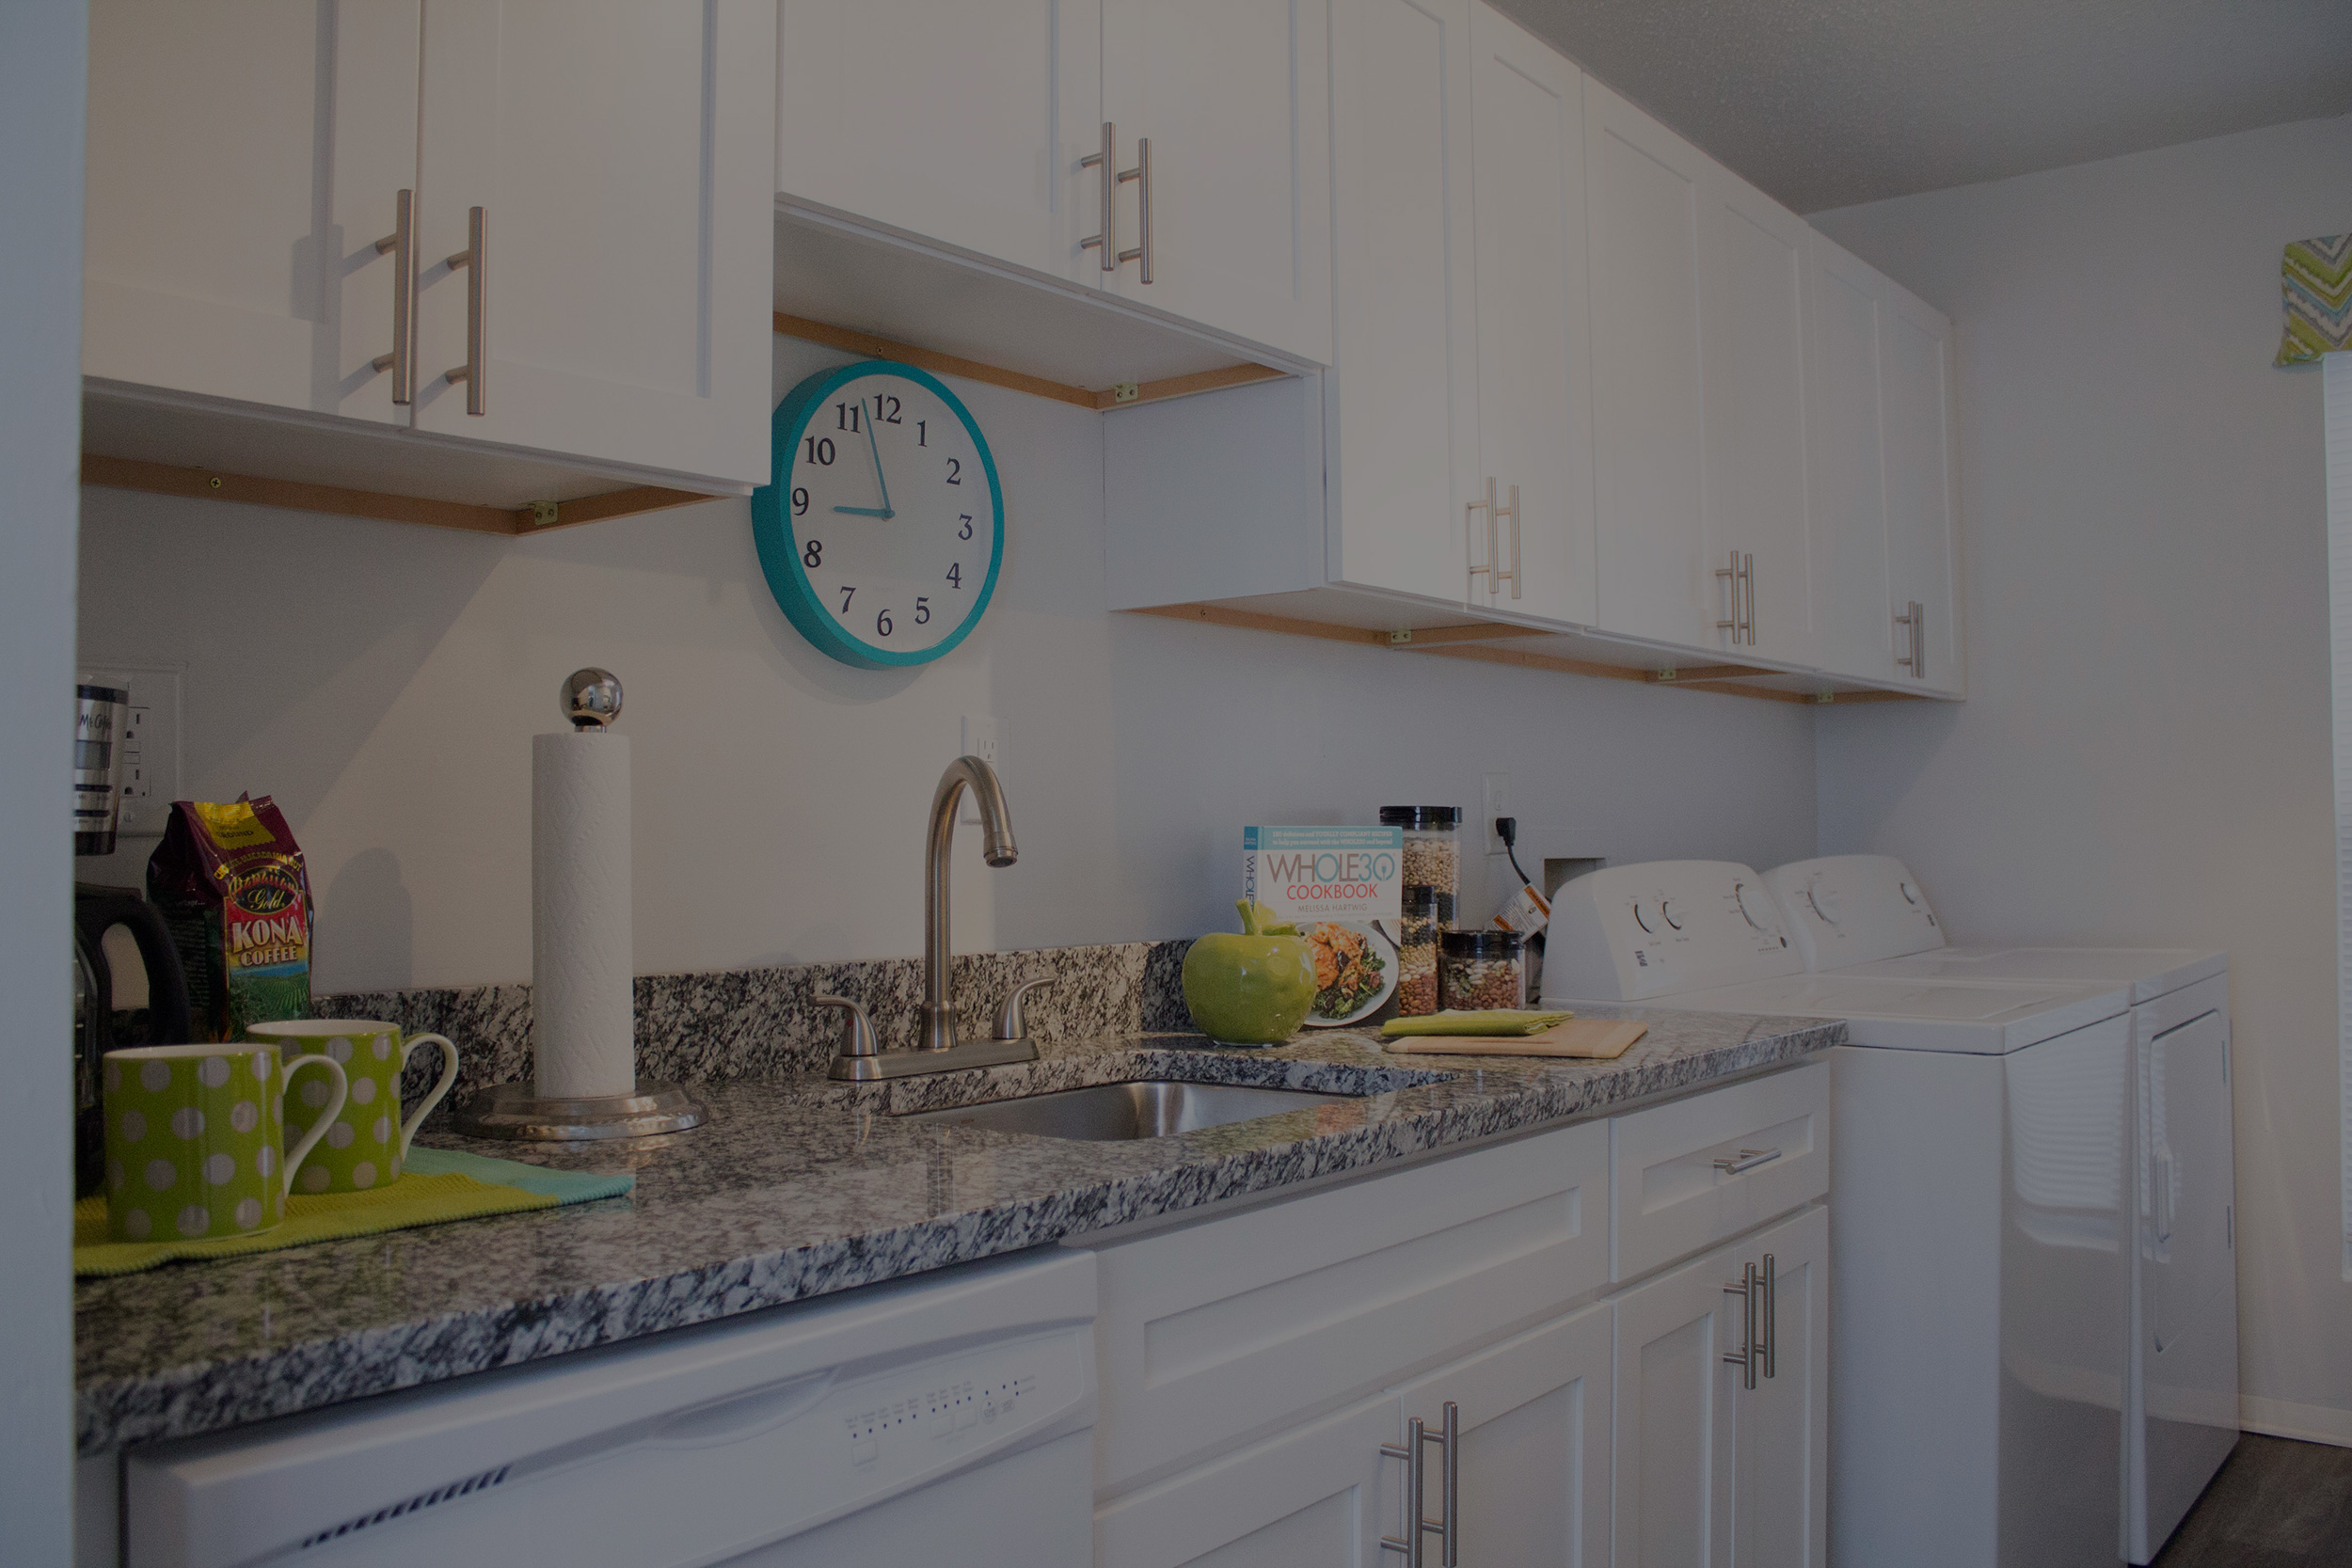 Multi-Family Kitchen Renovations